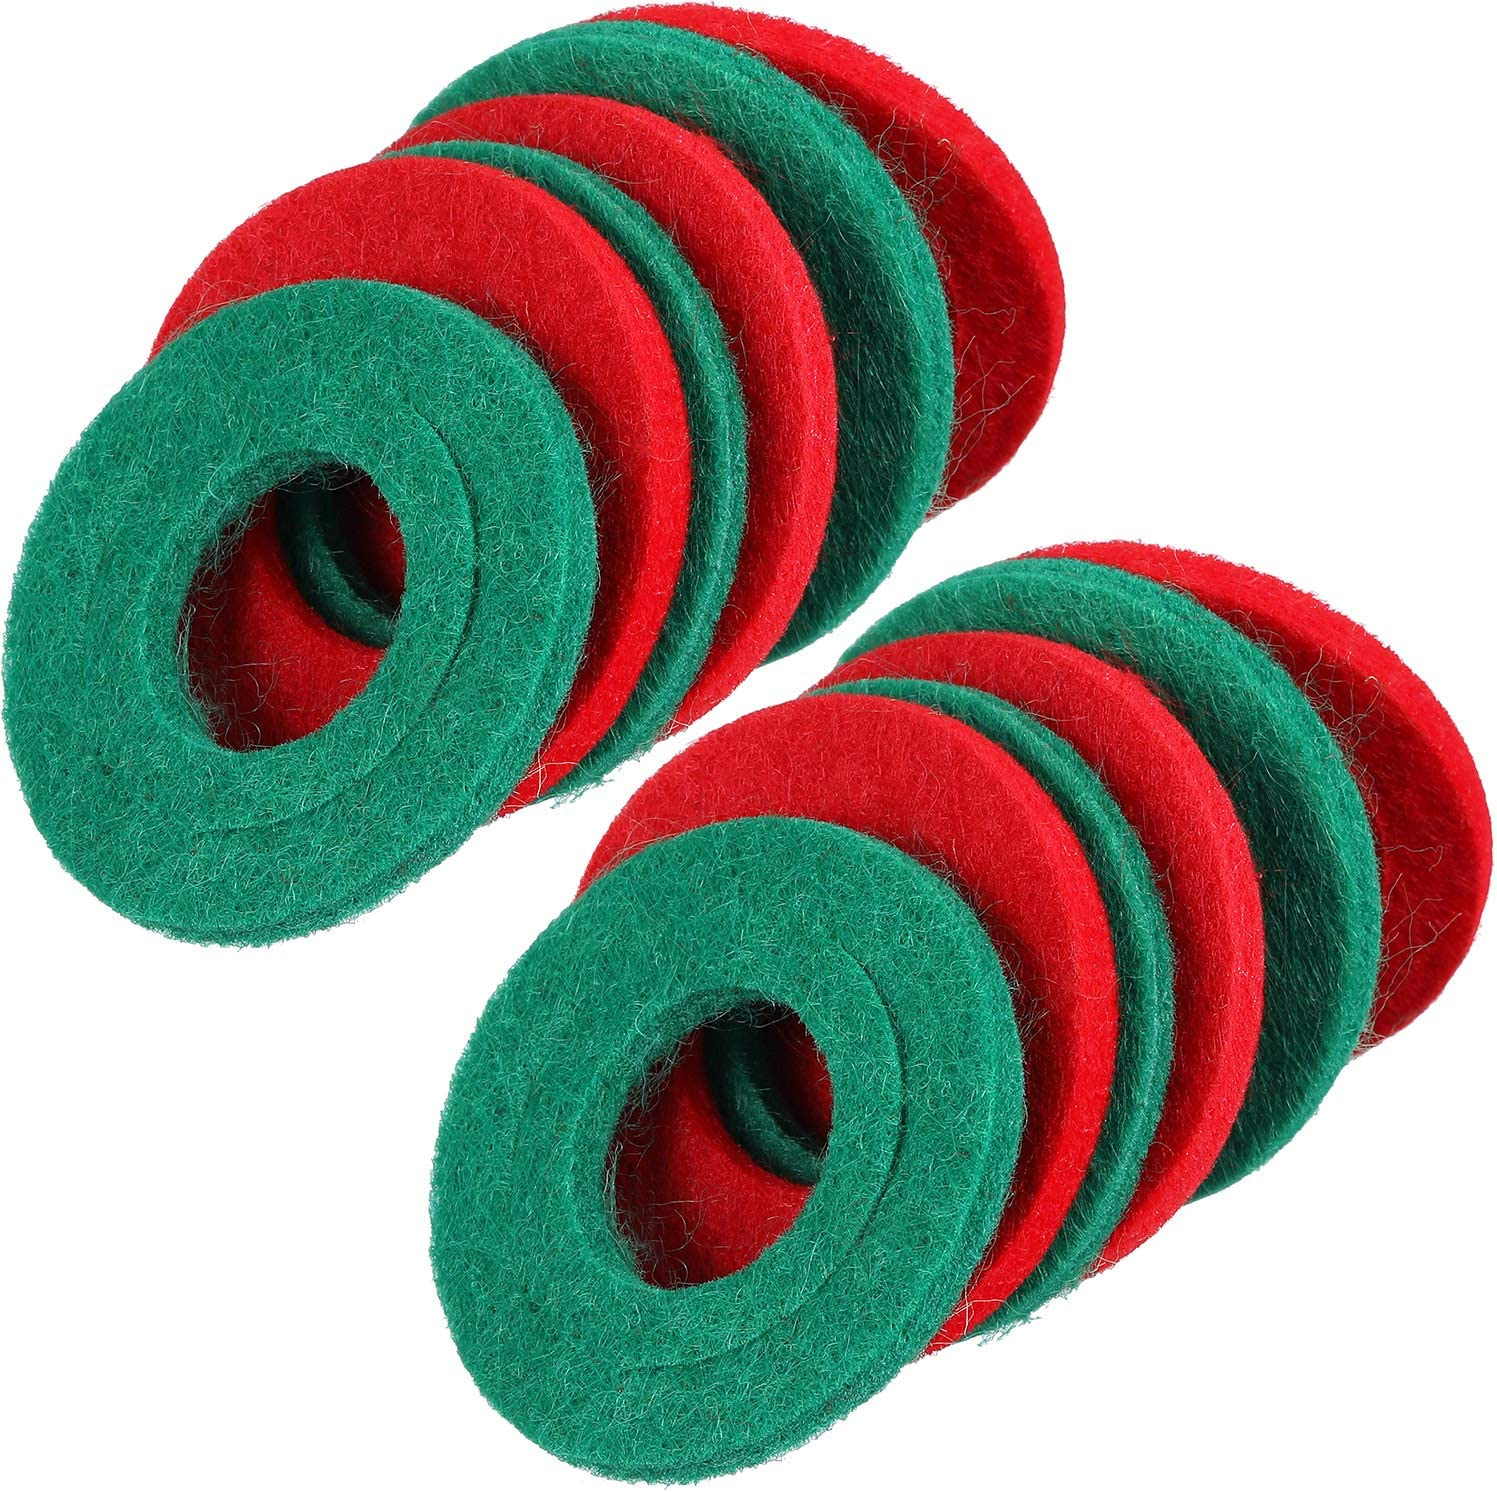 12 Pieces Battery Terminal Anti Corrosion Washers Fiber Battery Terminal Protector, 6 Red and 6 Green: Automotive